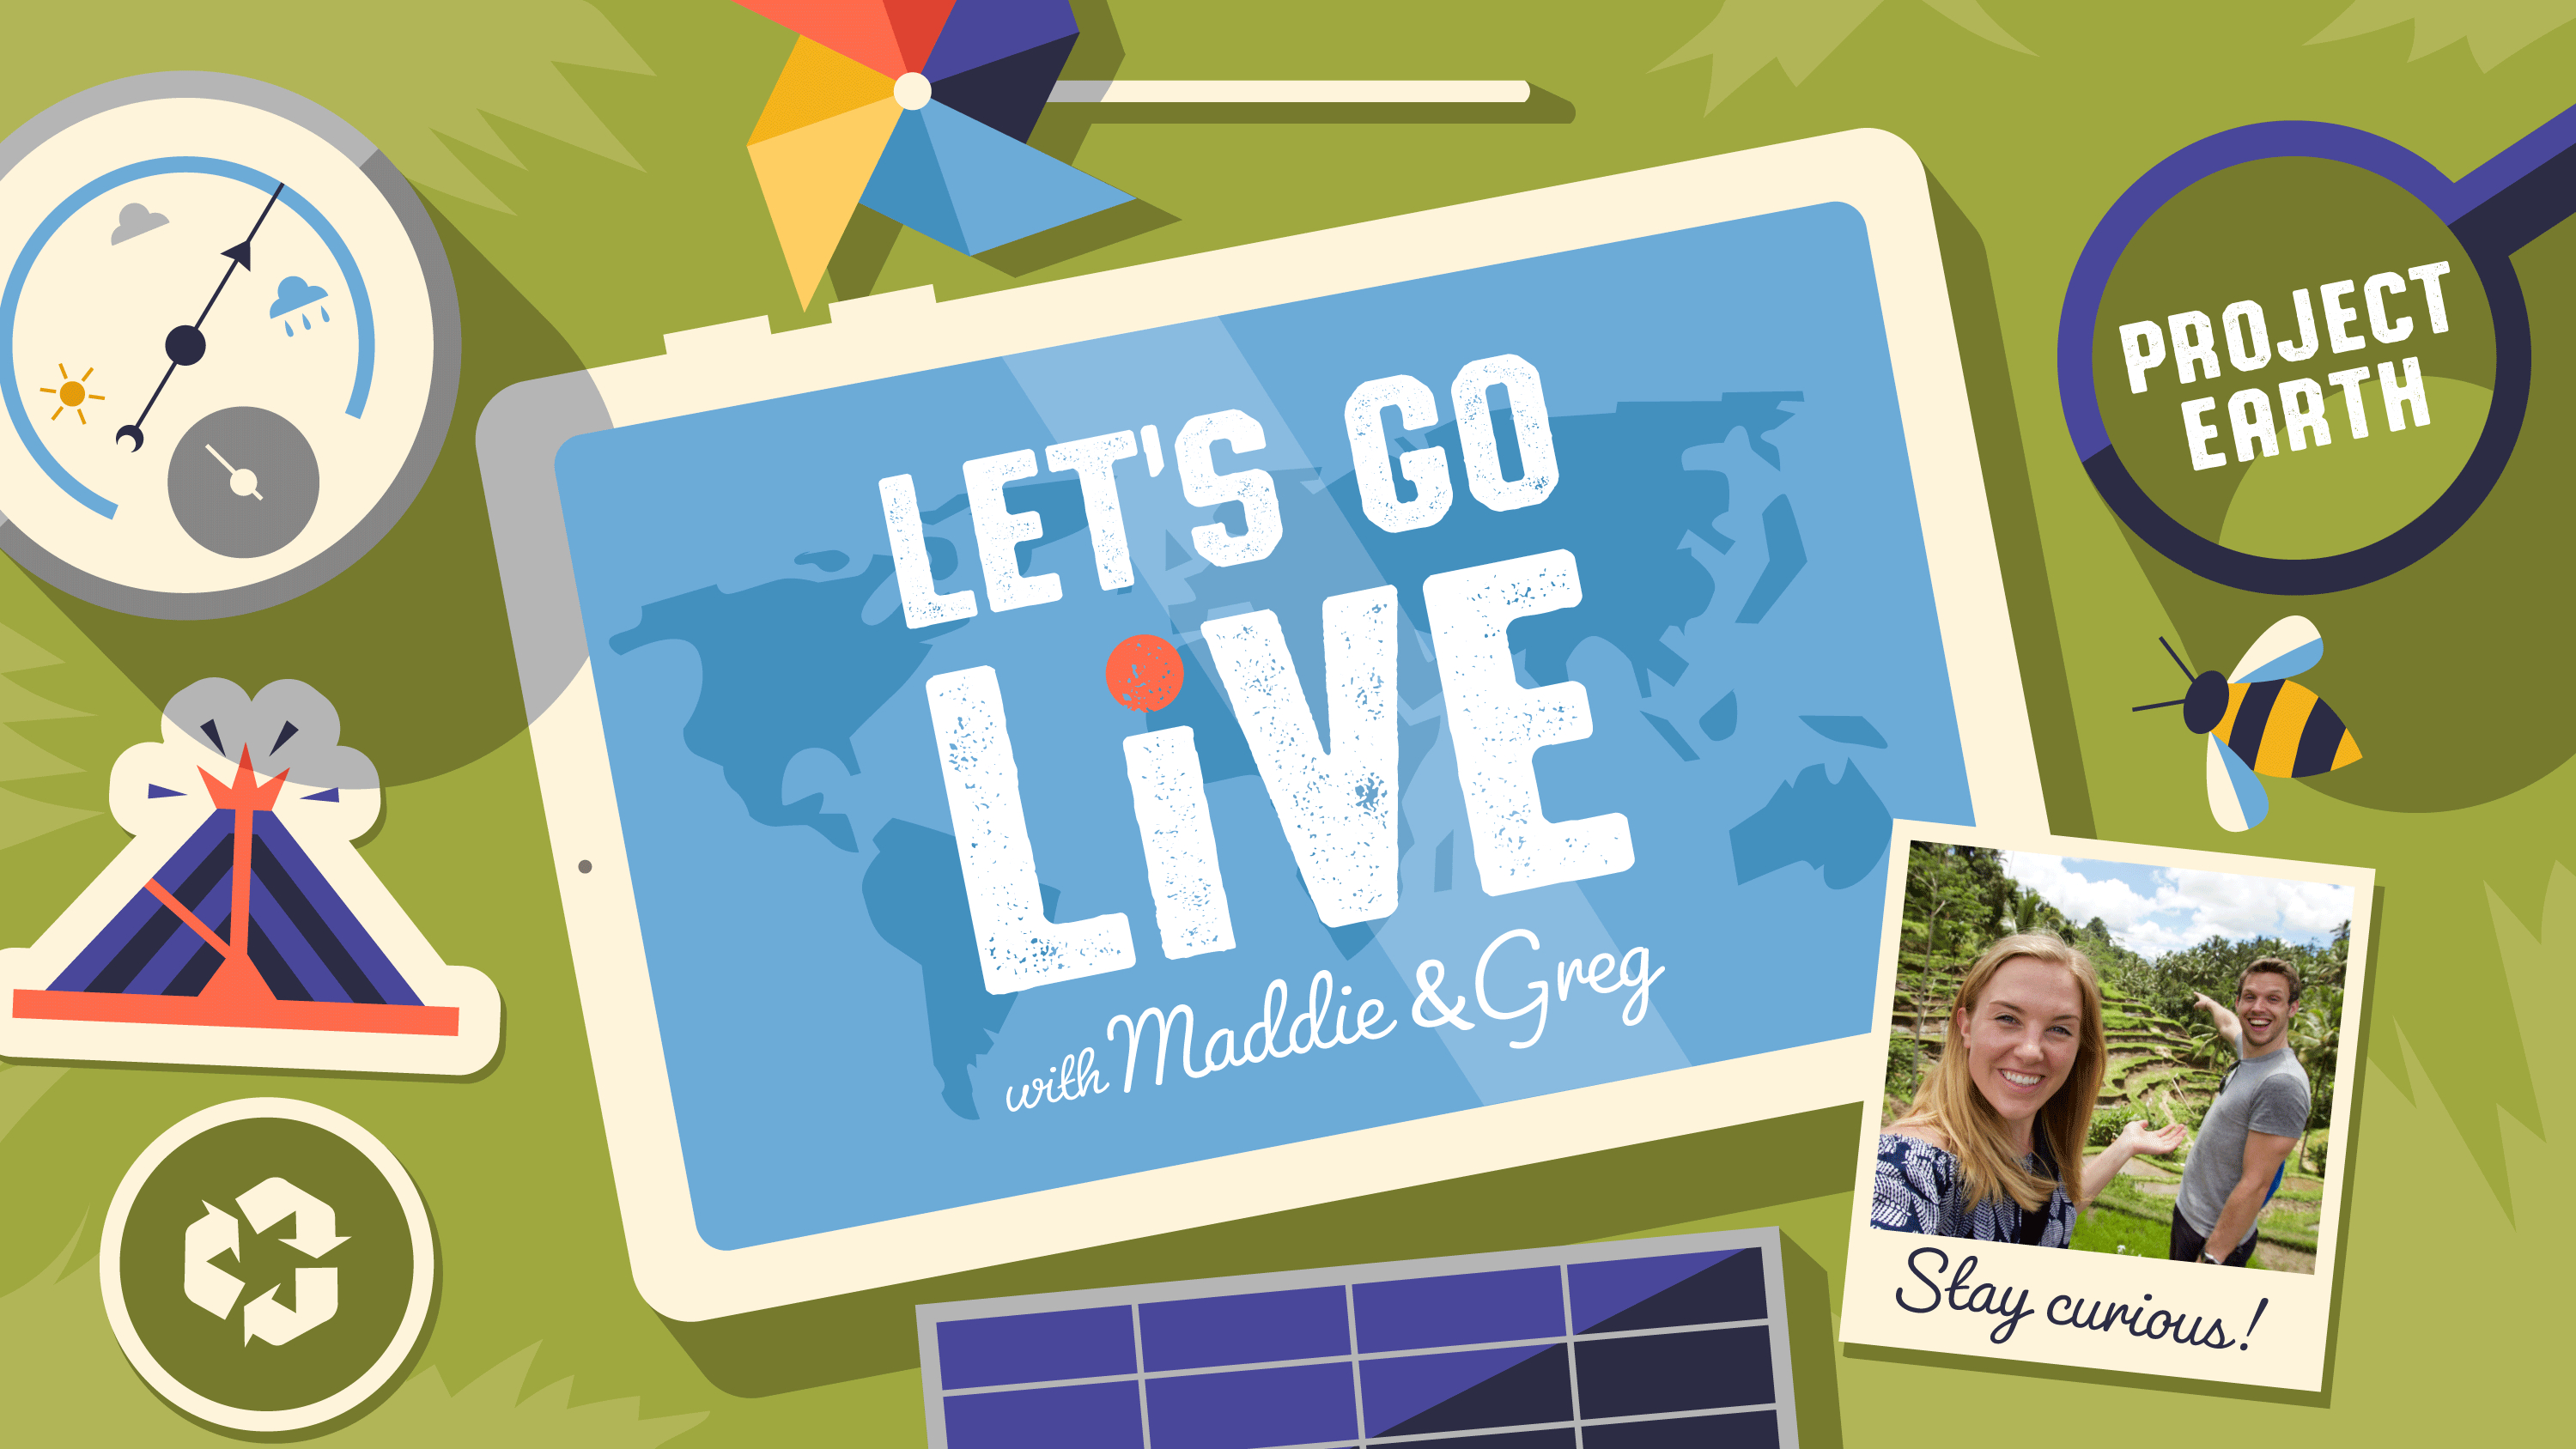 Let's Go Live with Maddie & Greg